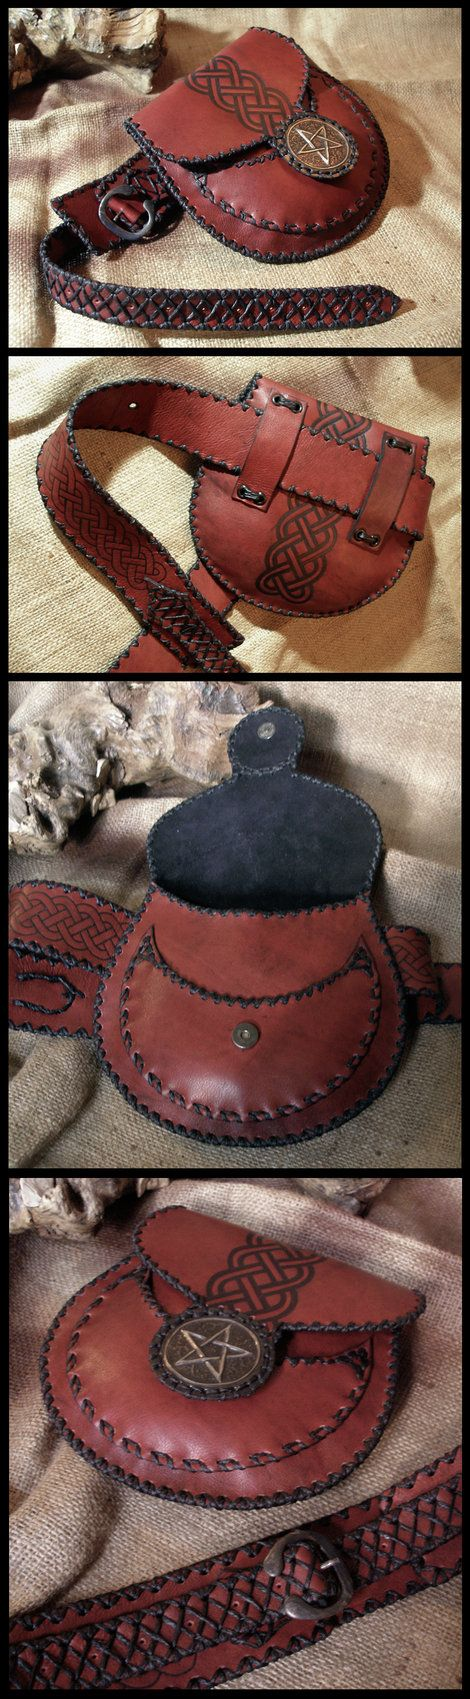 Leather waist pouch and belt by *morgenland